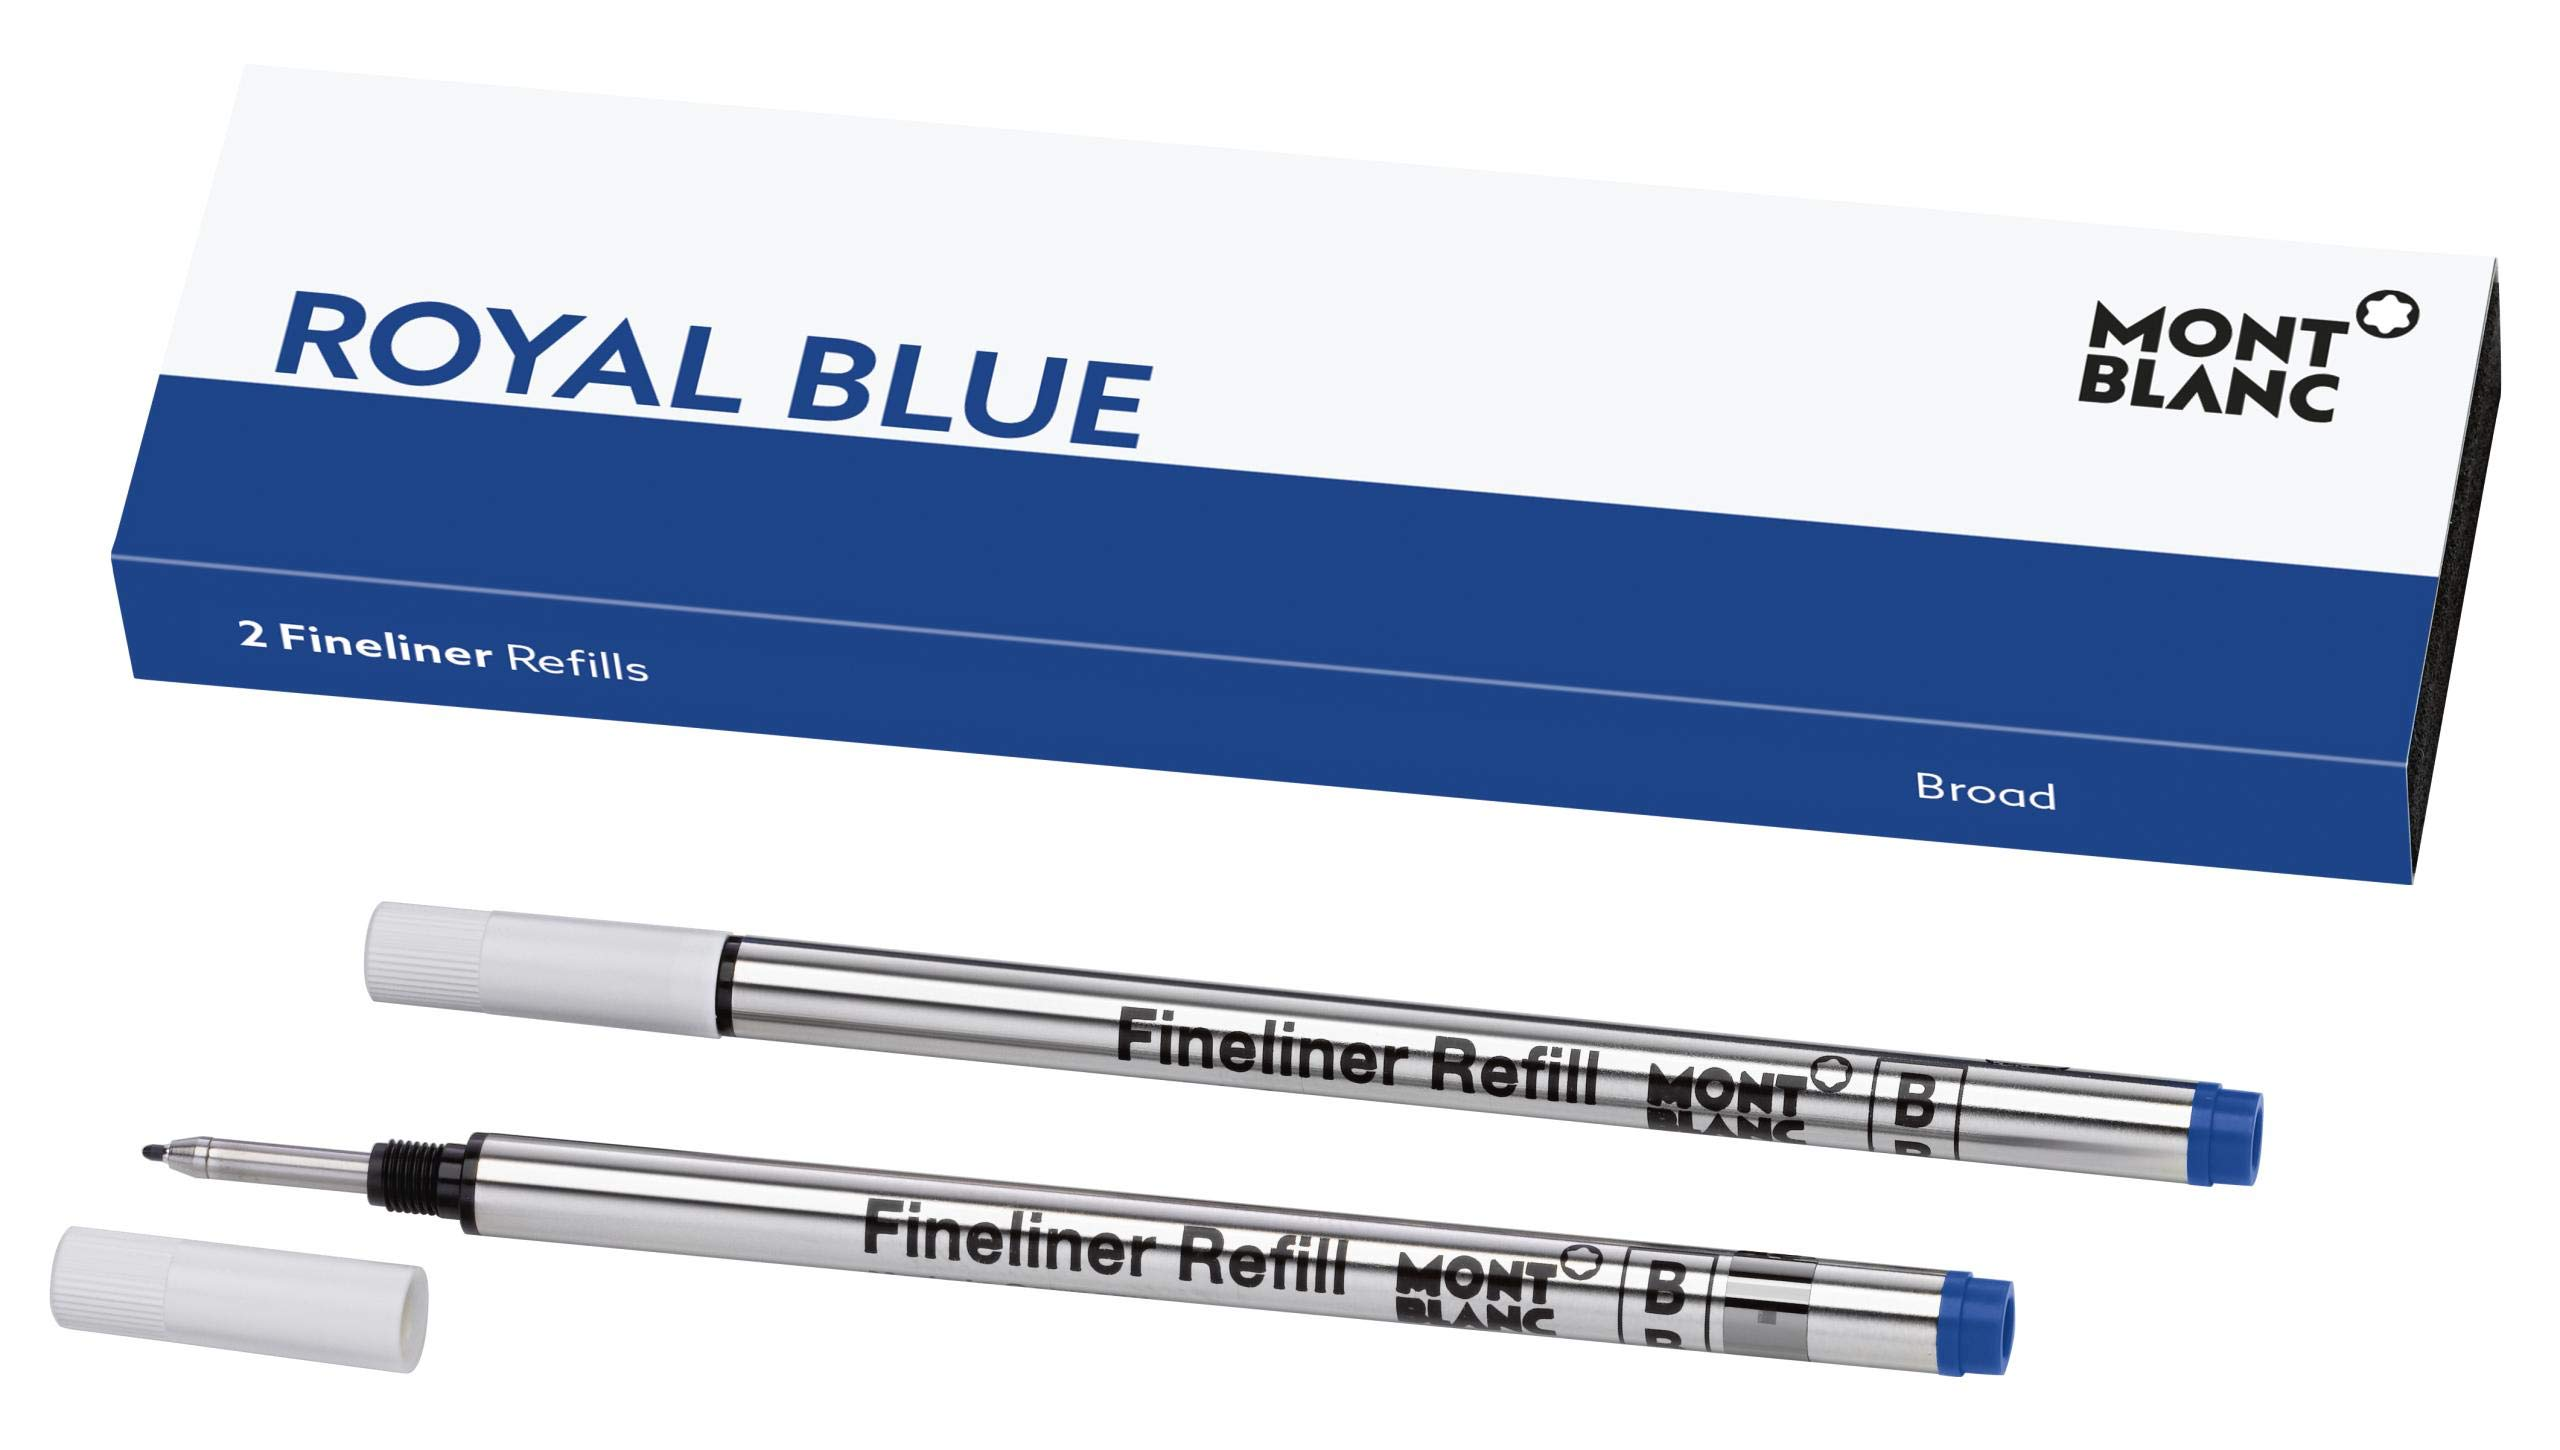 Montblanc Fineliner Refills (B) Pacific Blue 105171 - Pen Refills for Fineliner and Rollerball Pens by Montblanc - 2 x Fiber Tip Pen Refill by MONTBLANC